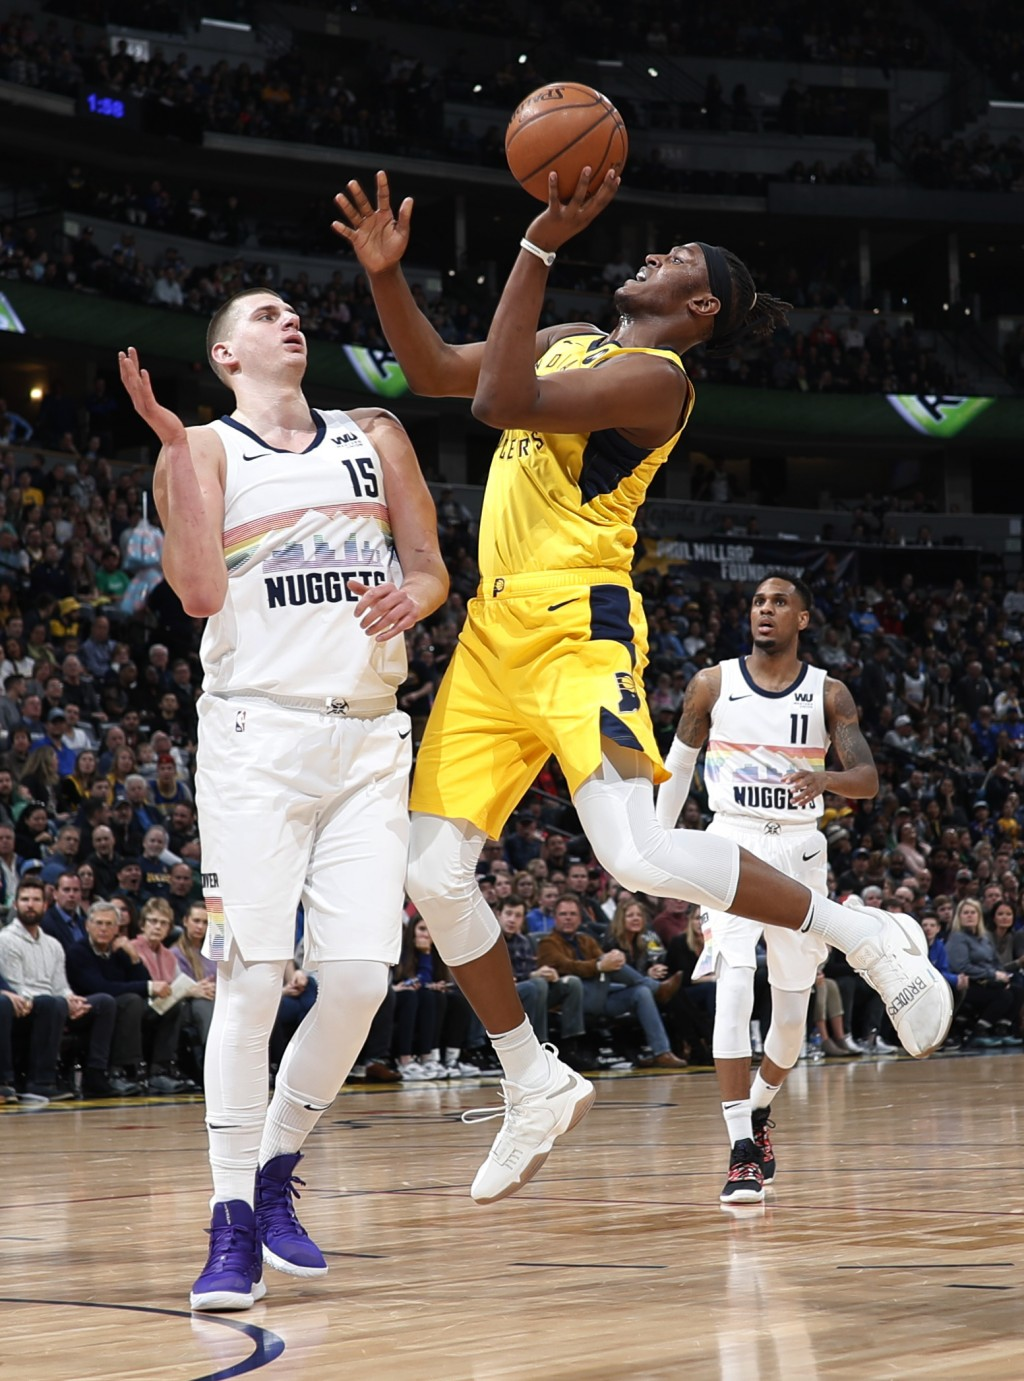 Indiana Pacers center Myles Turner, right, got up for a basket as Denver Nuggets center Nikola Jokic defends during the first half of an NBA basketbal